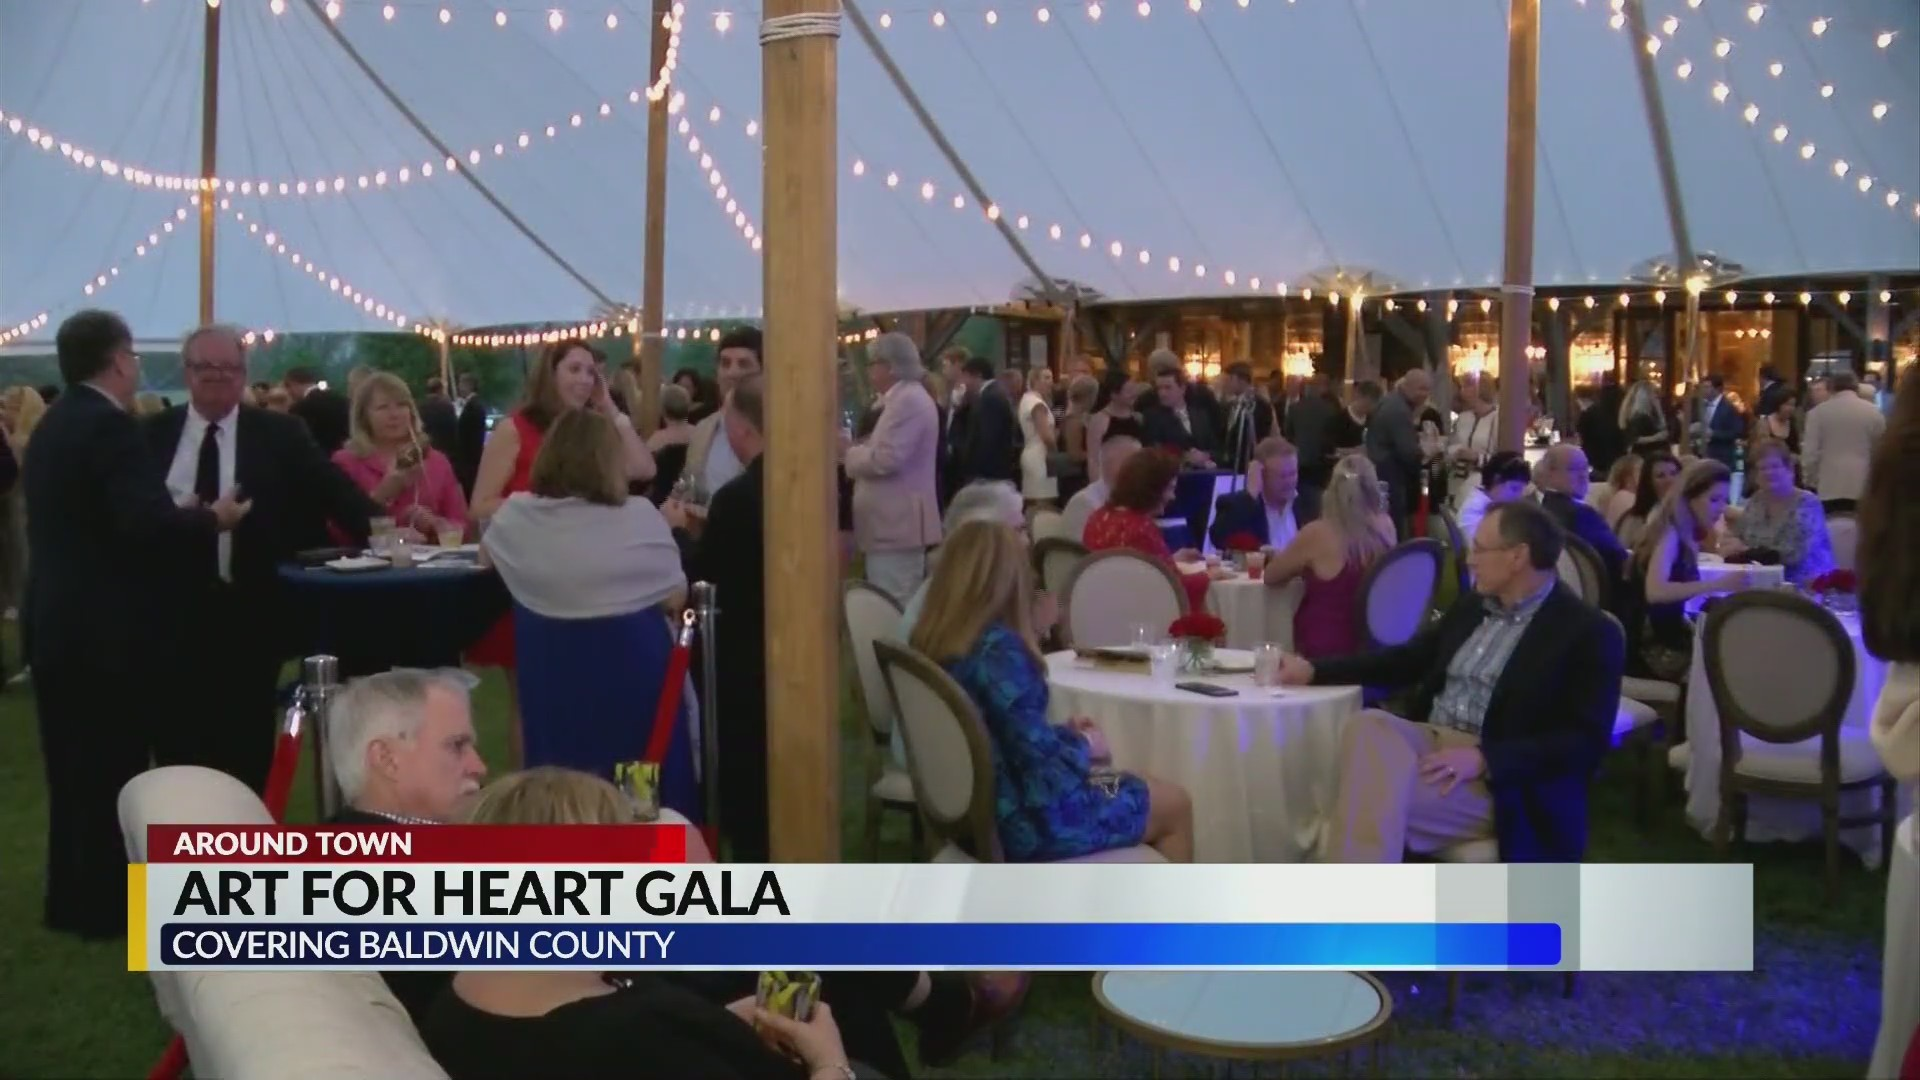 Art for Heart Gala 2019 event in Fairhope